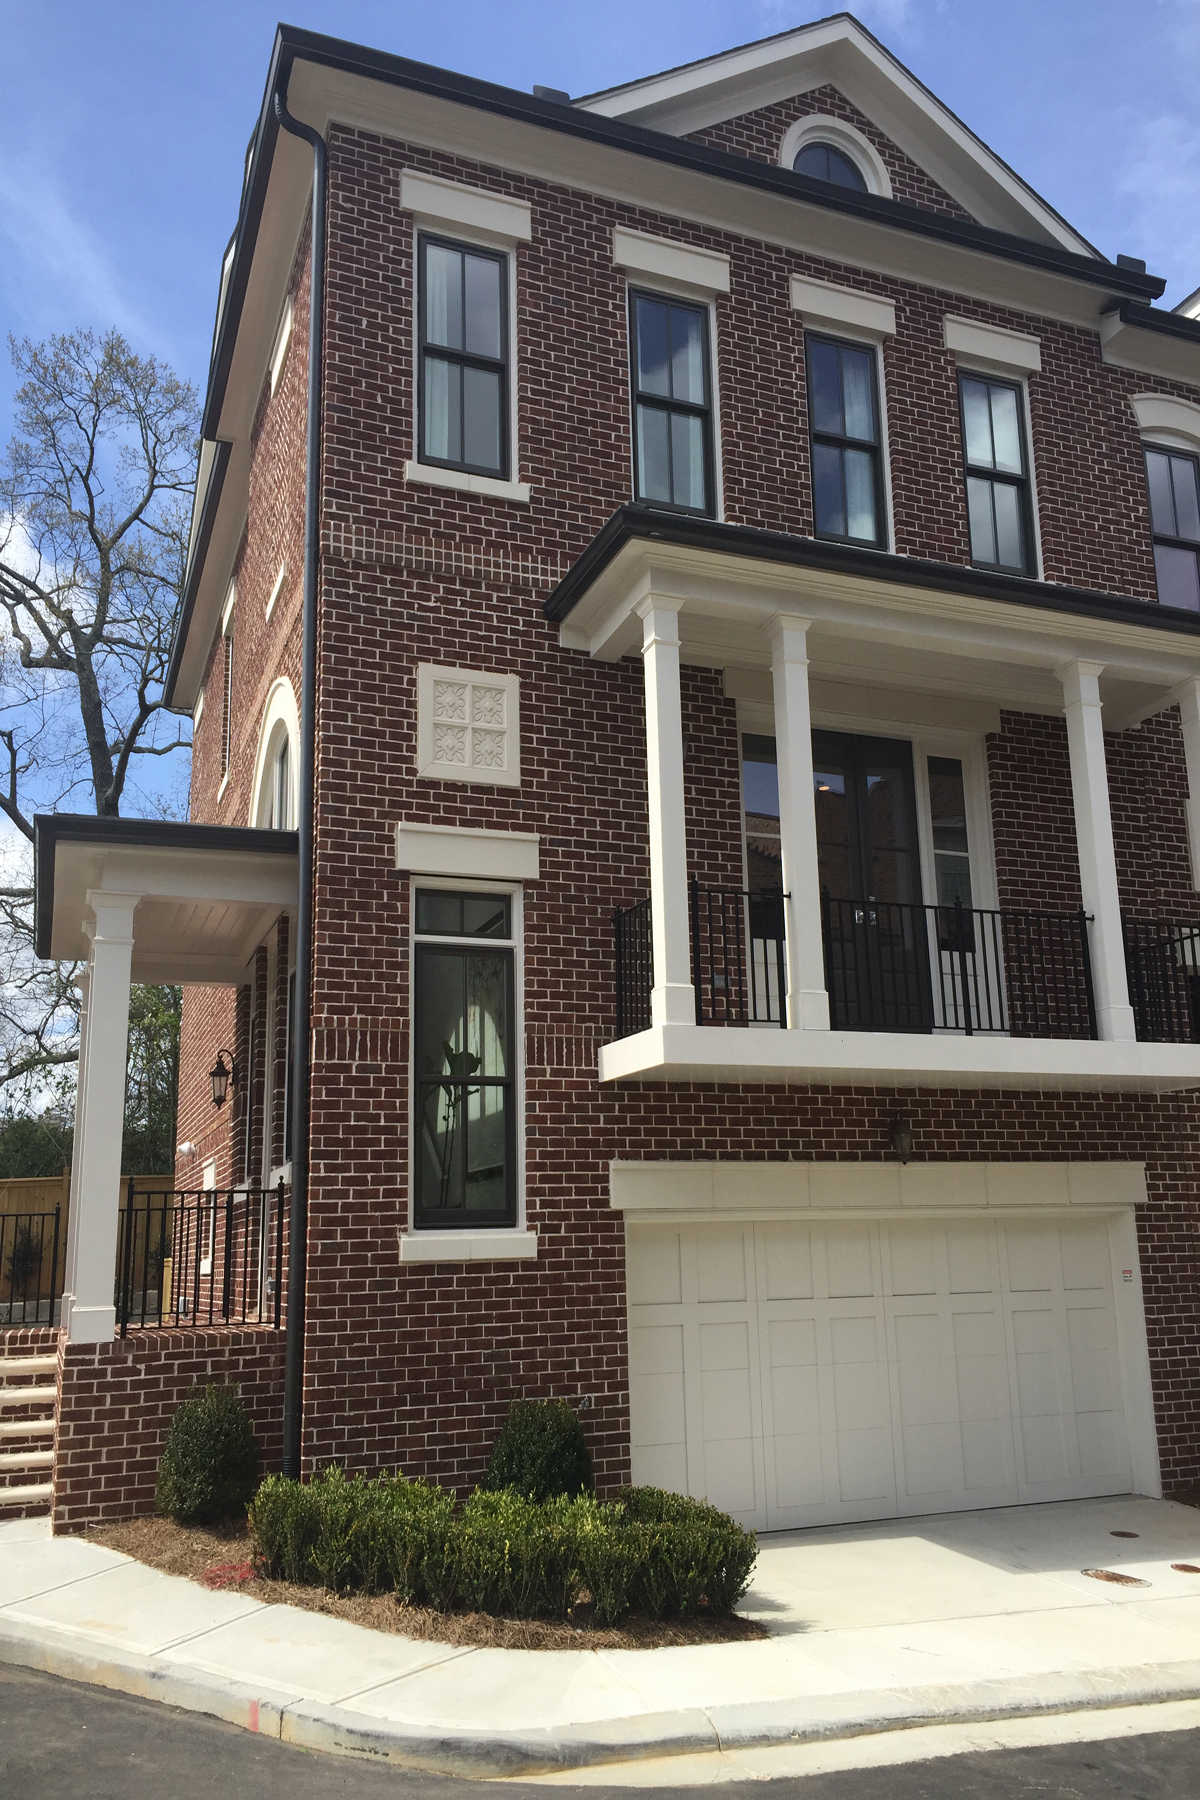 Townhouse for Sale at Beautifully Crafted Townhome 3726 Paige Way Atlanta, Georgia, 30319 United States